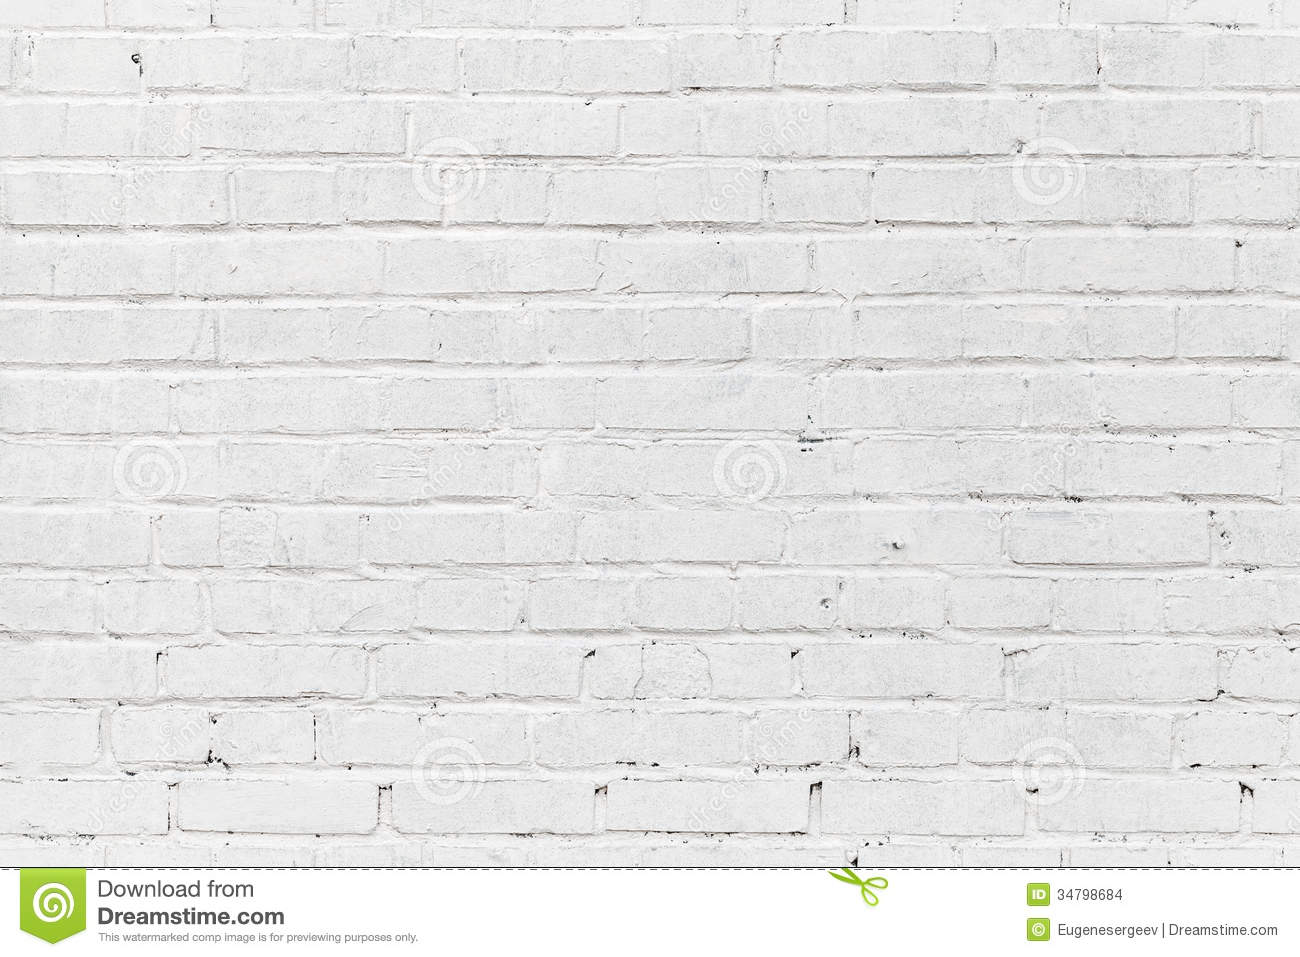 12 949 Seamless White Brick Wall Texture Photos Free Royalty Free Stock Photos From Dreamstime